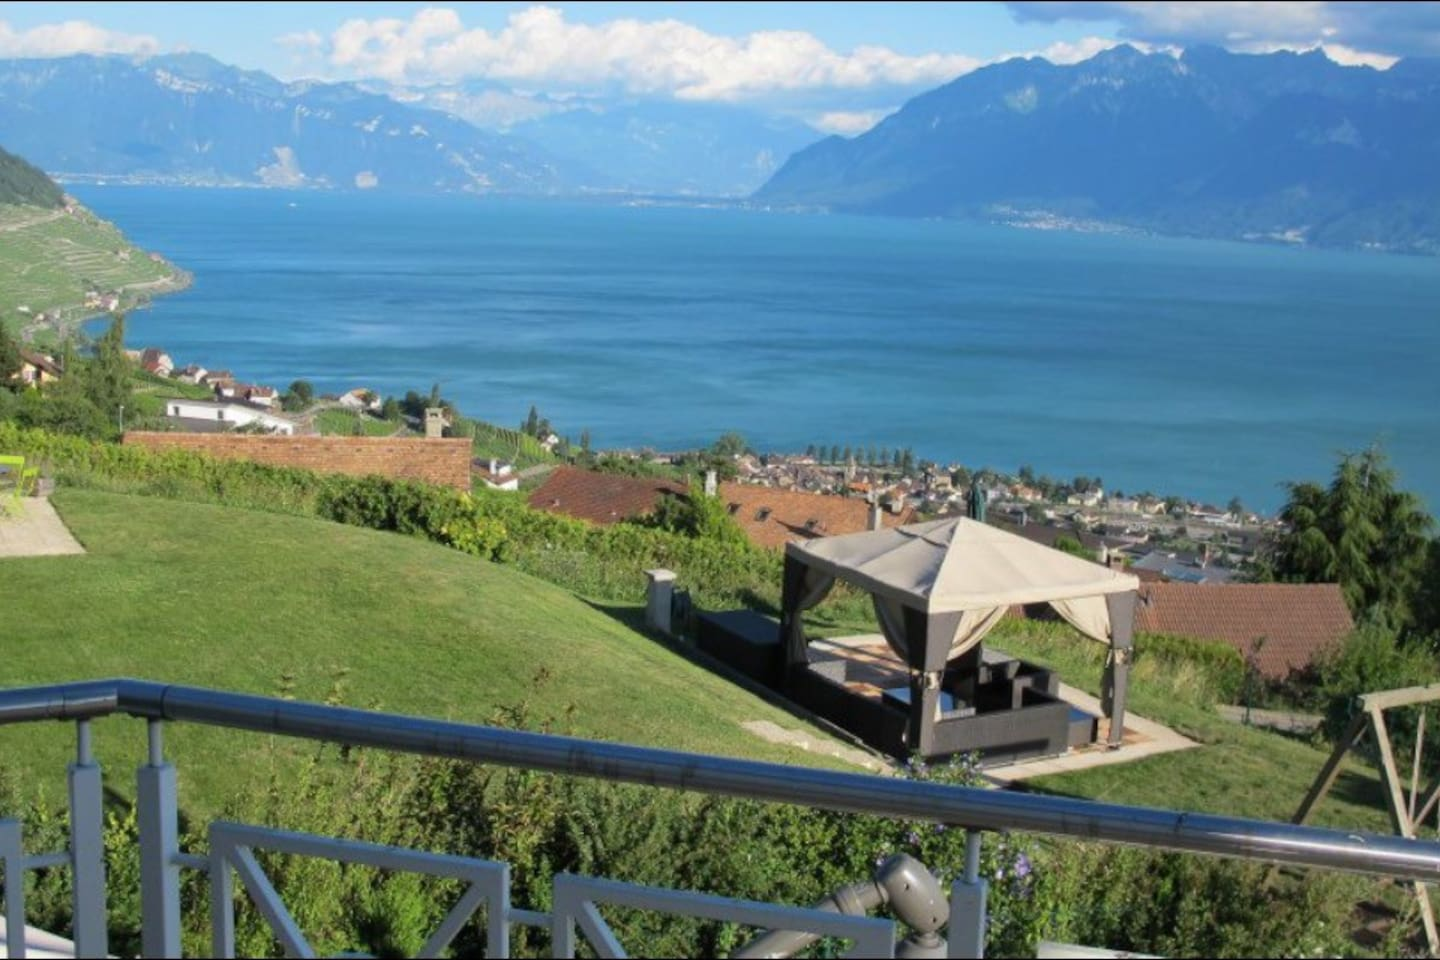 This is the panoramic lake view from the house first floor